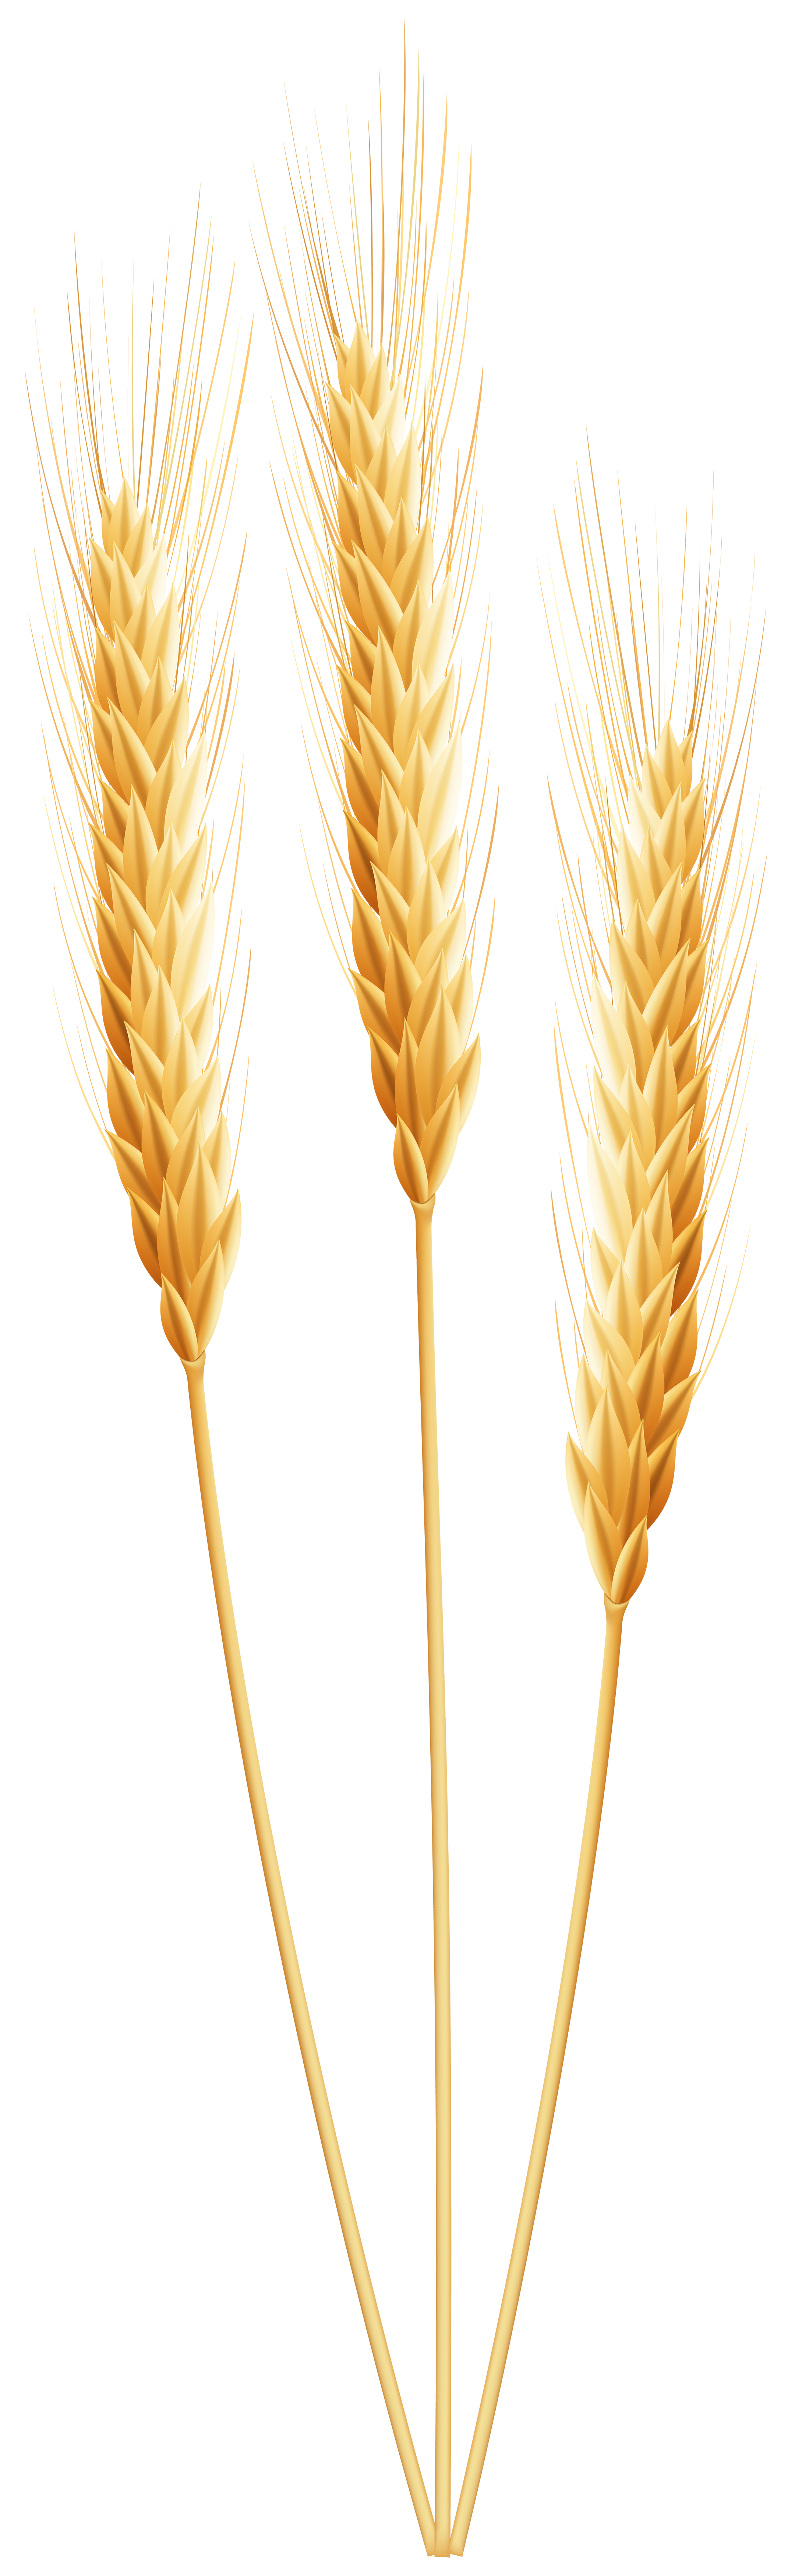 Clipart tree wheat. Png clip art image